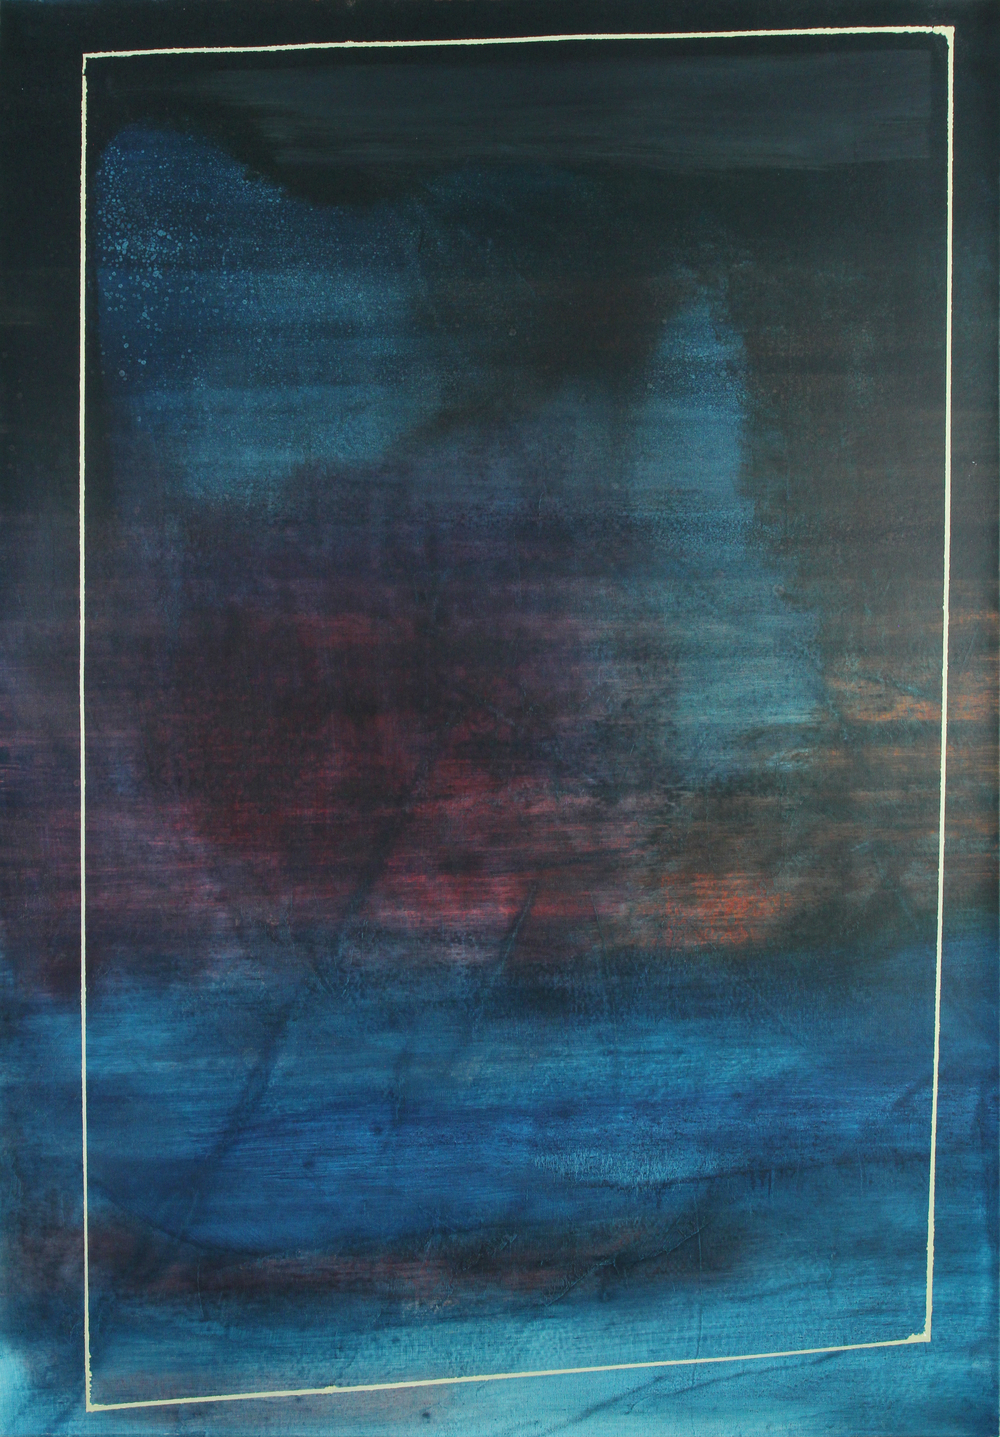 indigo, 2013, oil on canvas, 54 x 37.5 in